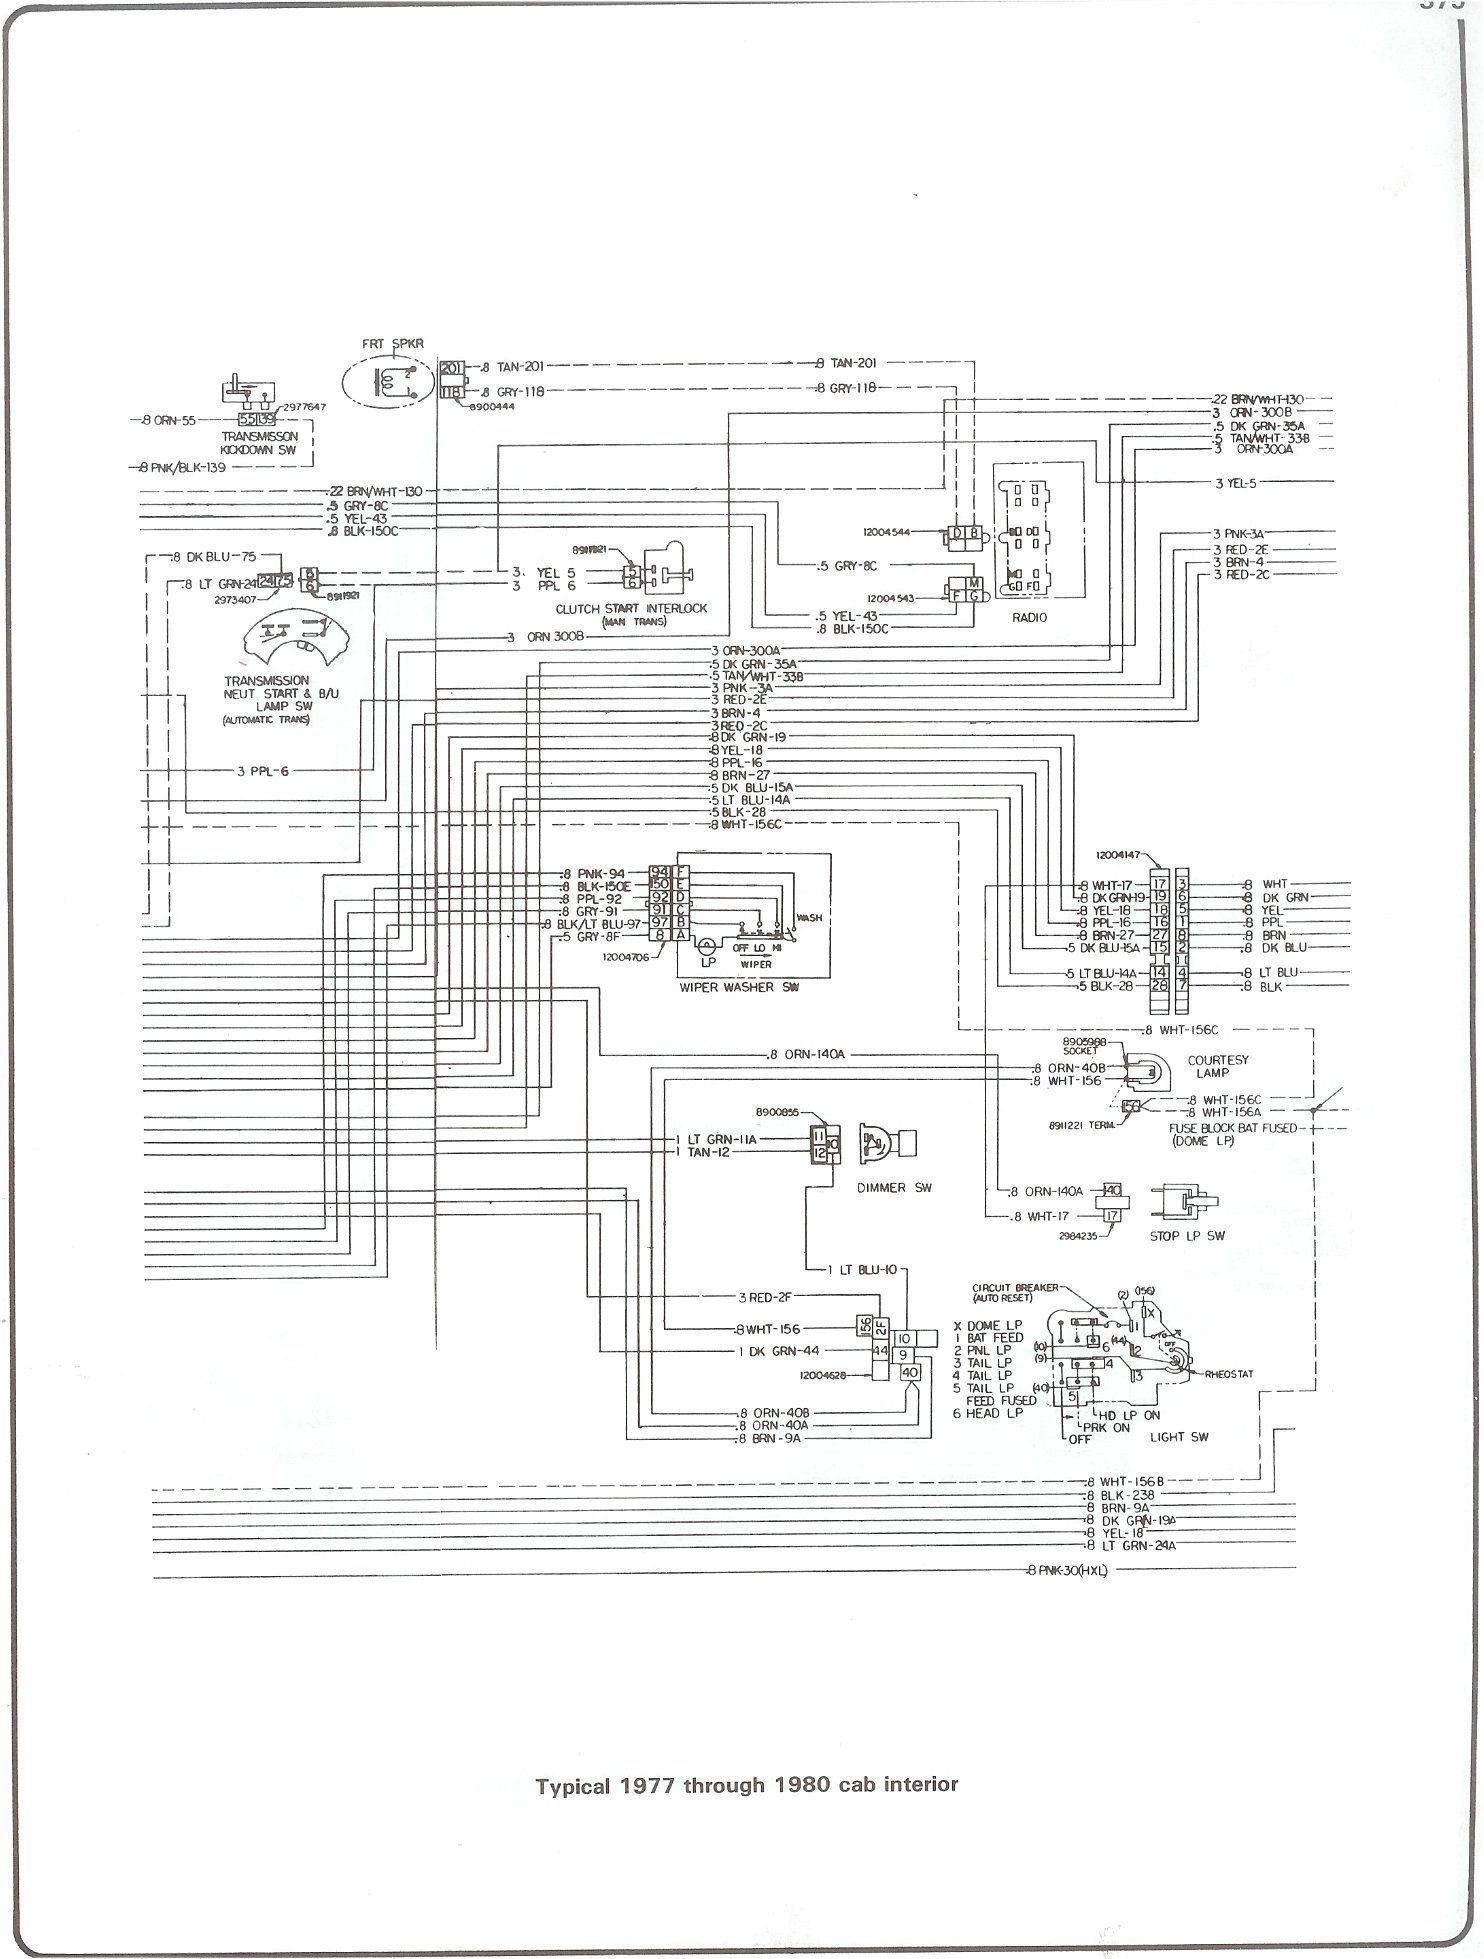 77 80_cab_inter complete 73 87 wiring diagrams 1977 chevy truck wiring diagram at edmiracle.co